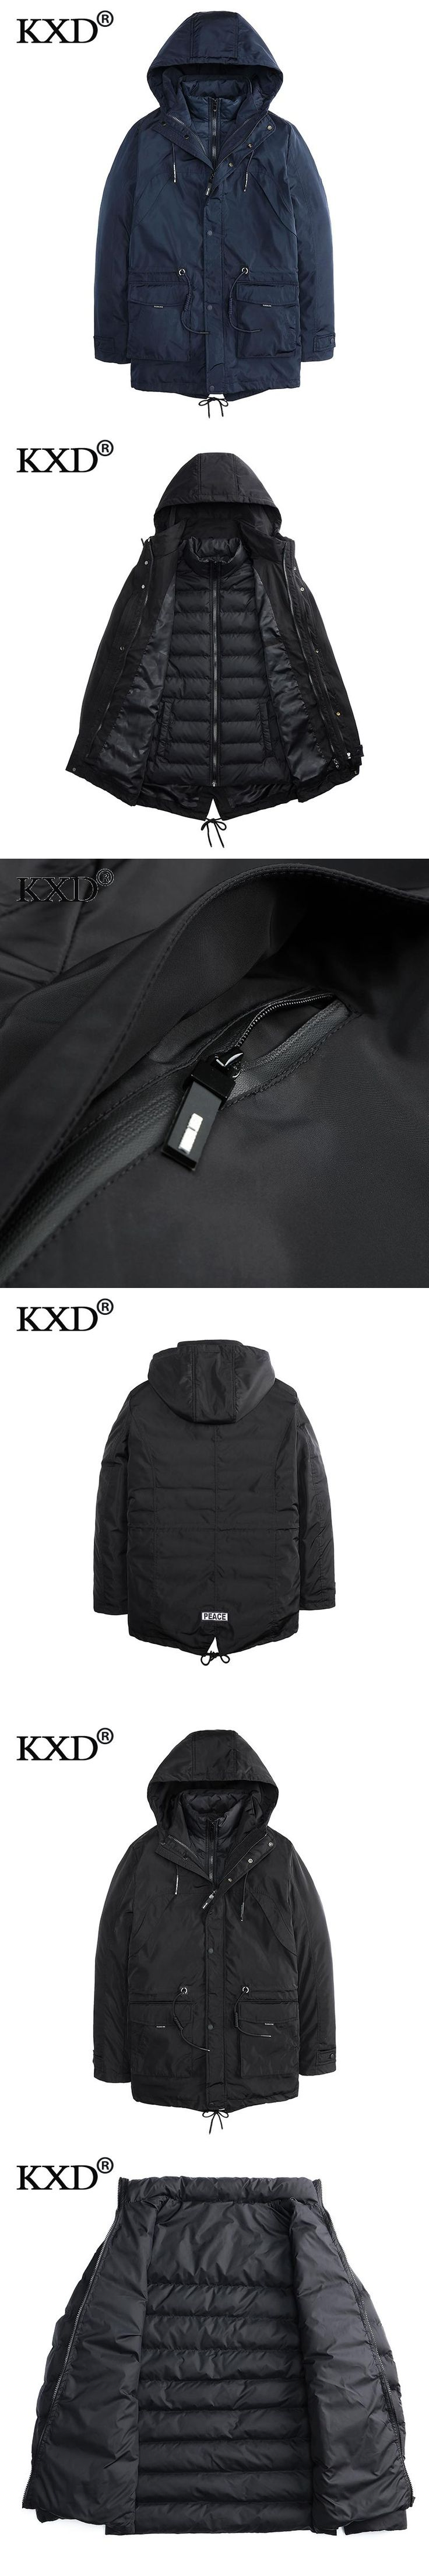 KXD 2017 New Fashion Men's Clothing High Quality Casual Windproof Winter Warm Jackets And Coats For Men  Parka Hombre 16M8654